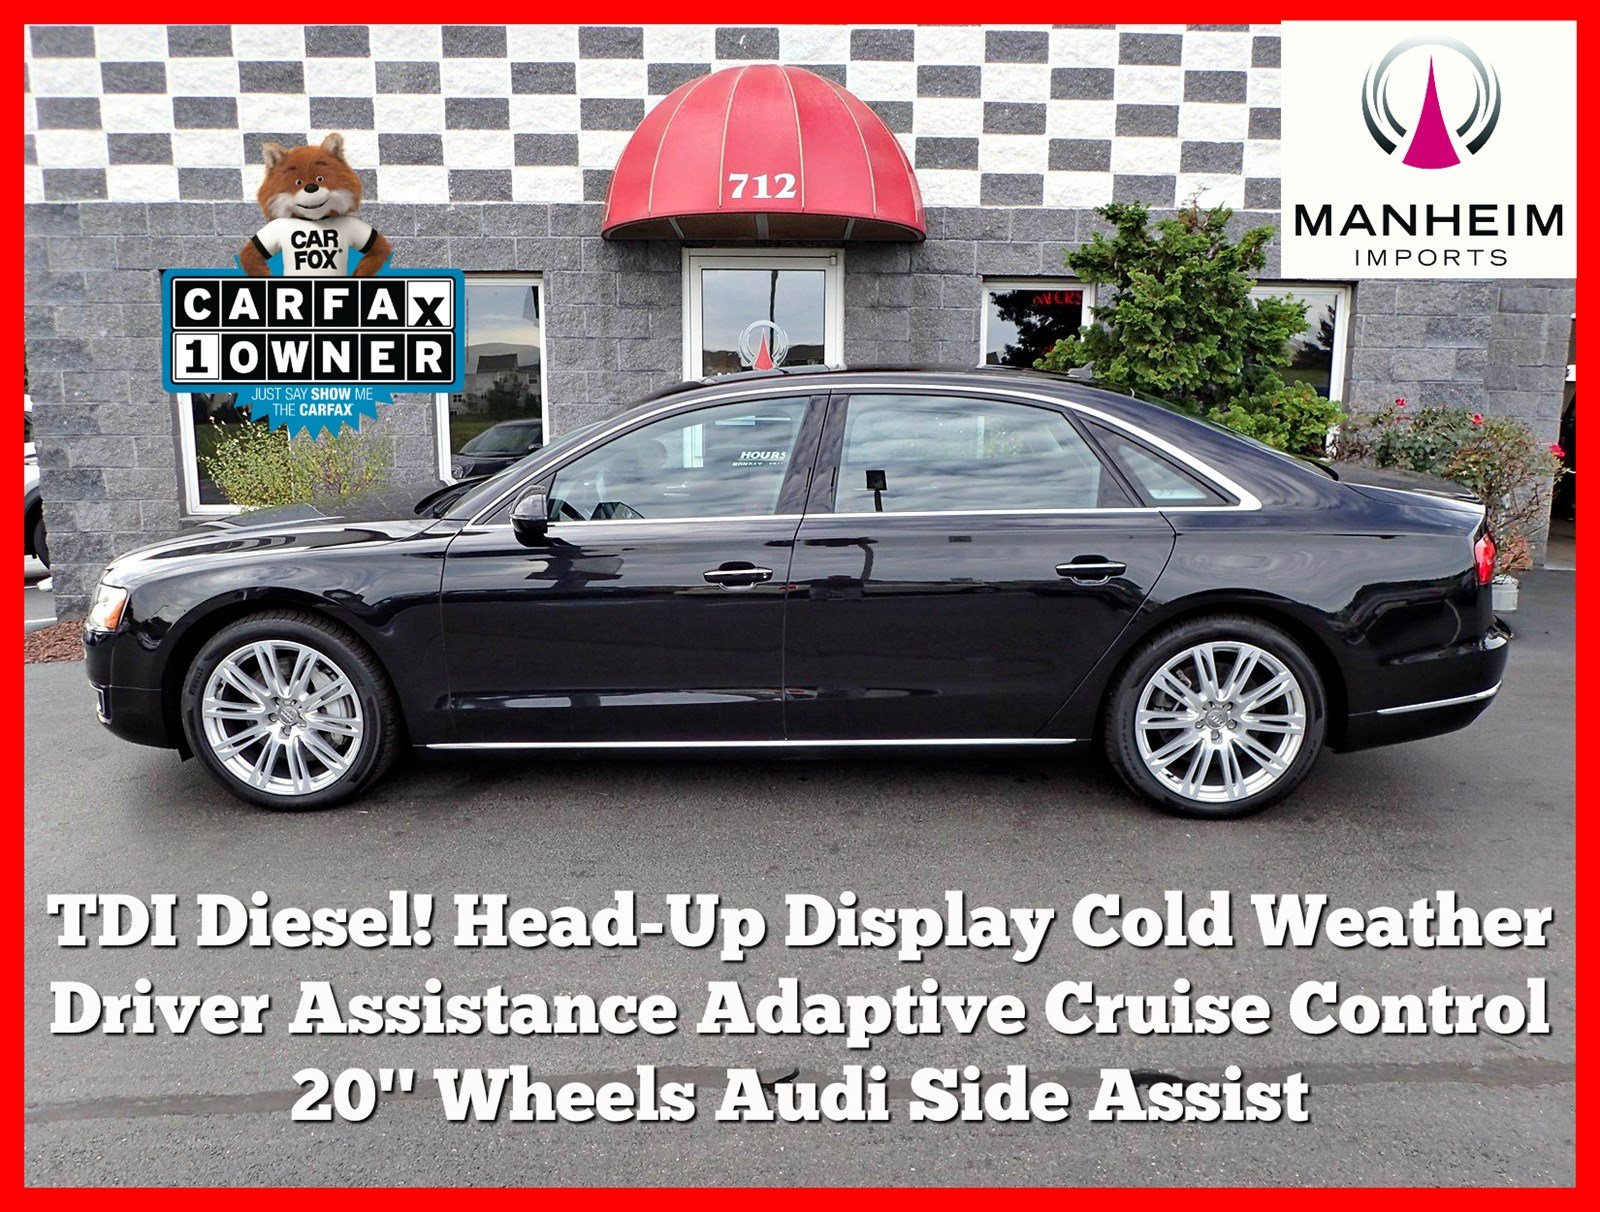 Pre Owned 2015 Audi A8 L TDI 4dr Car in Manheim